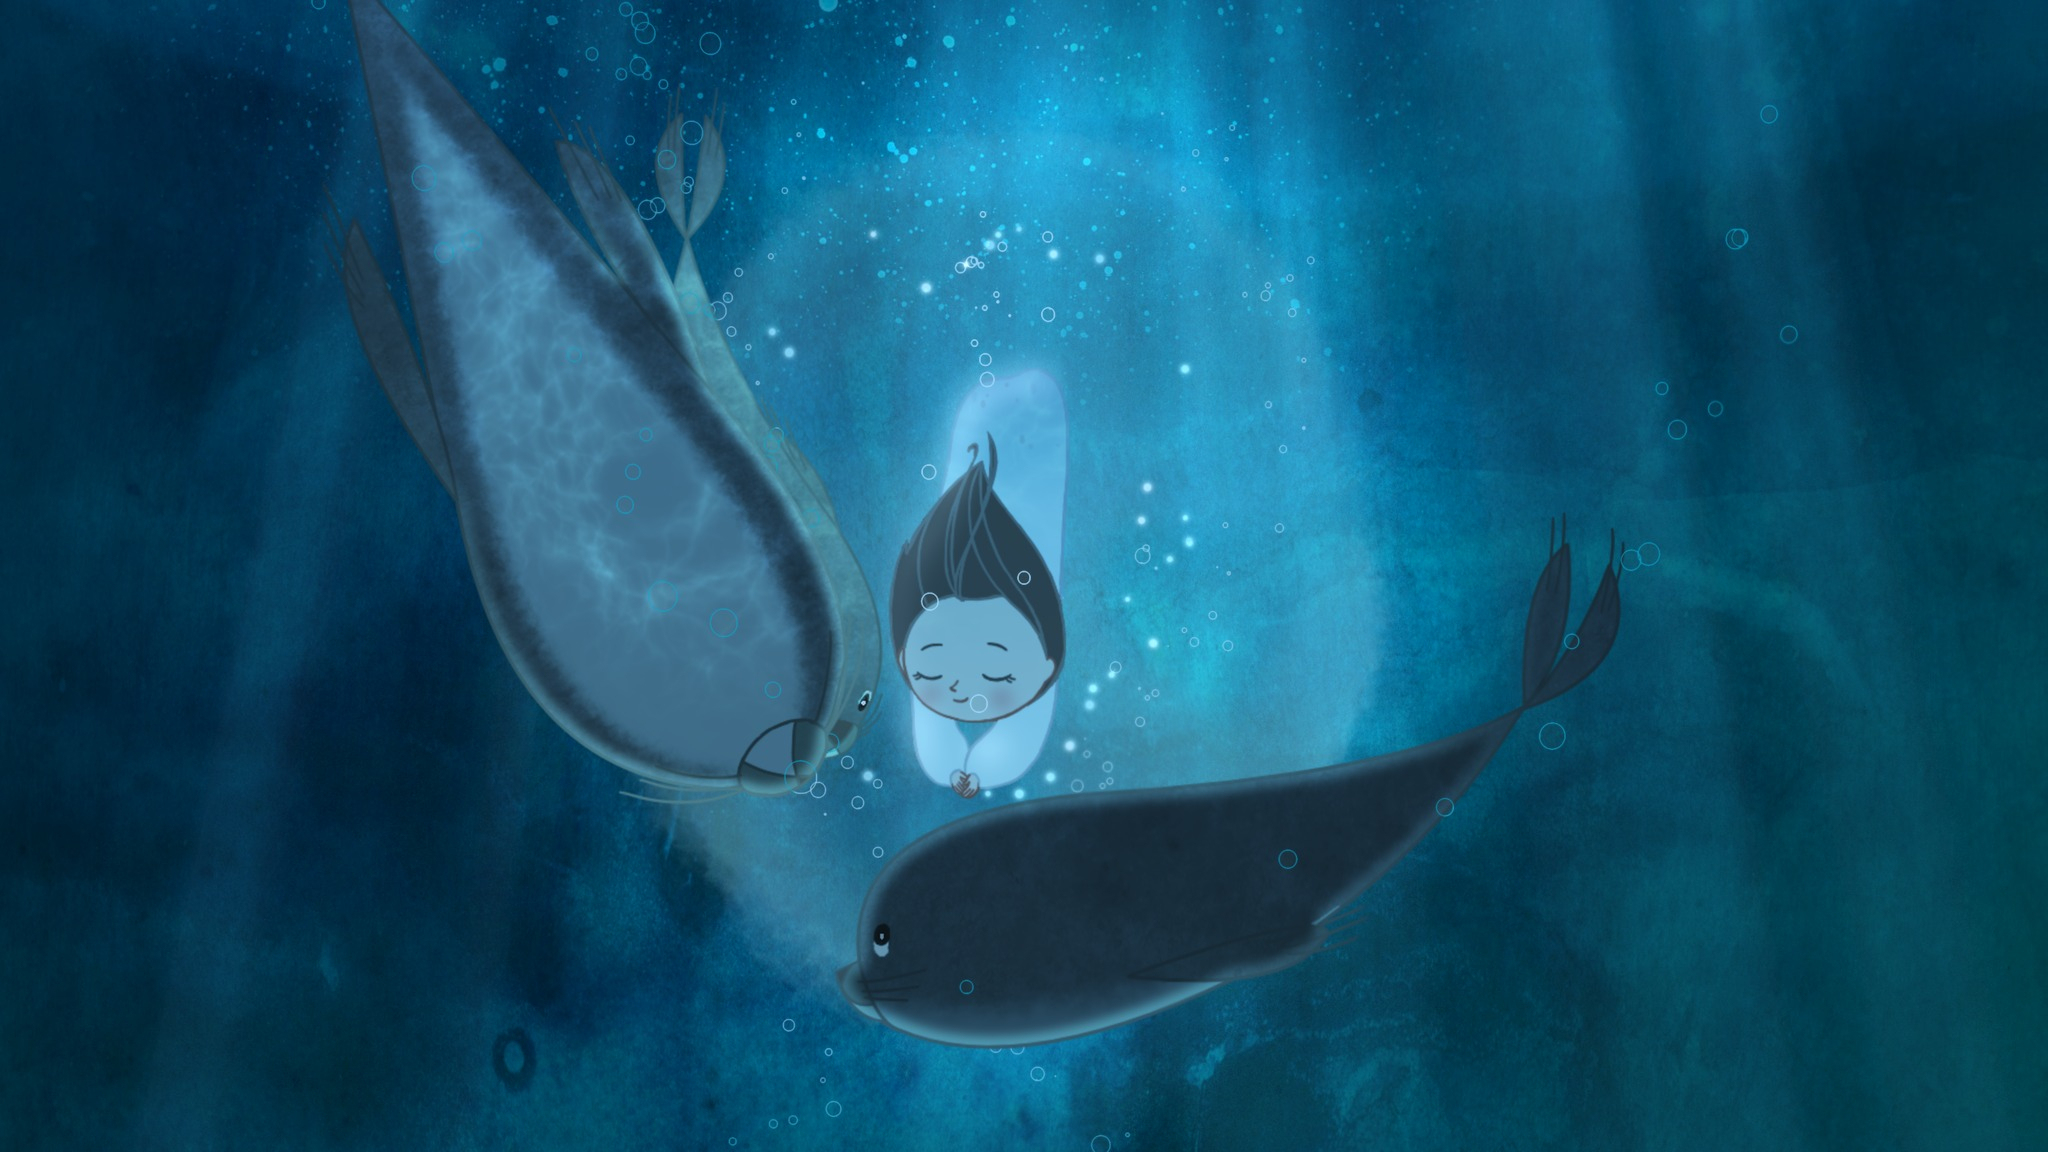 10 images that show why Song of the Sea is the year's most beautiful animated film - Vox